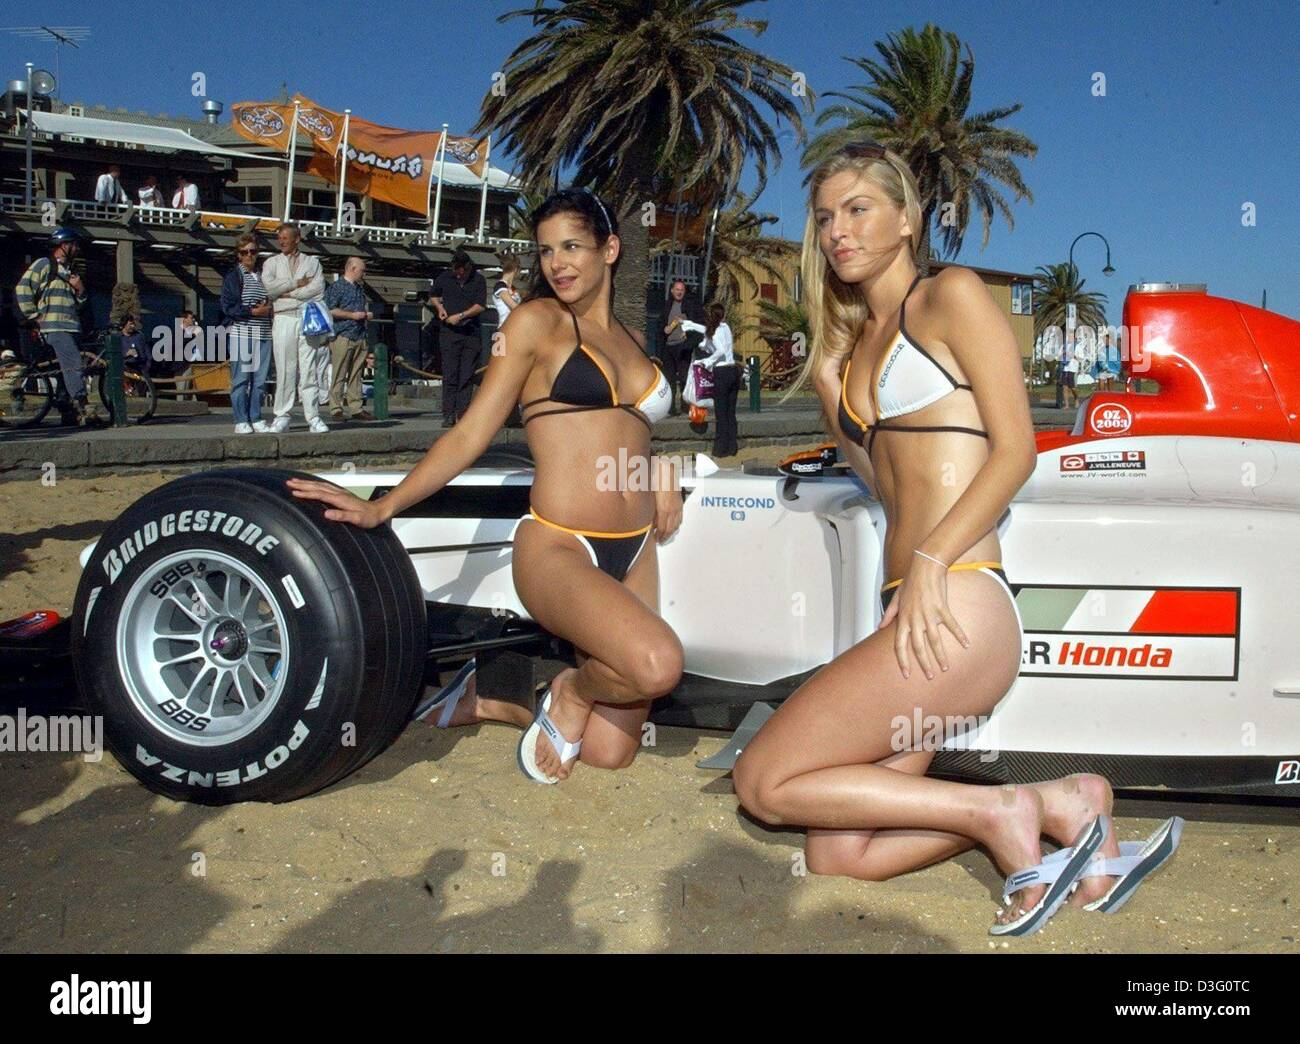 (dpa) - Two models pose with a formula one race car of the BAR-Honda team on the beach in Melbourne, 5 March 2003. - Stock Image